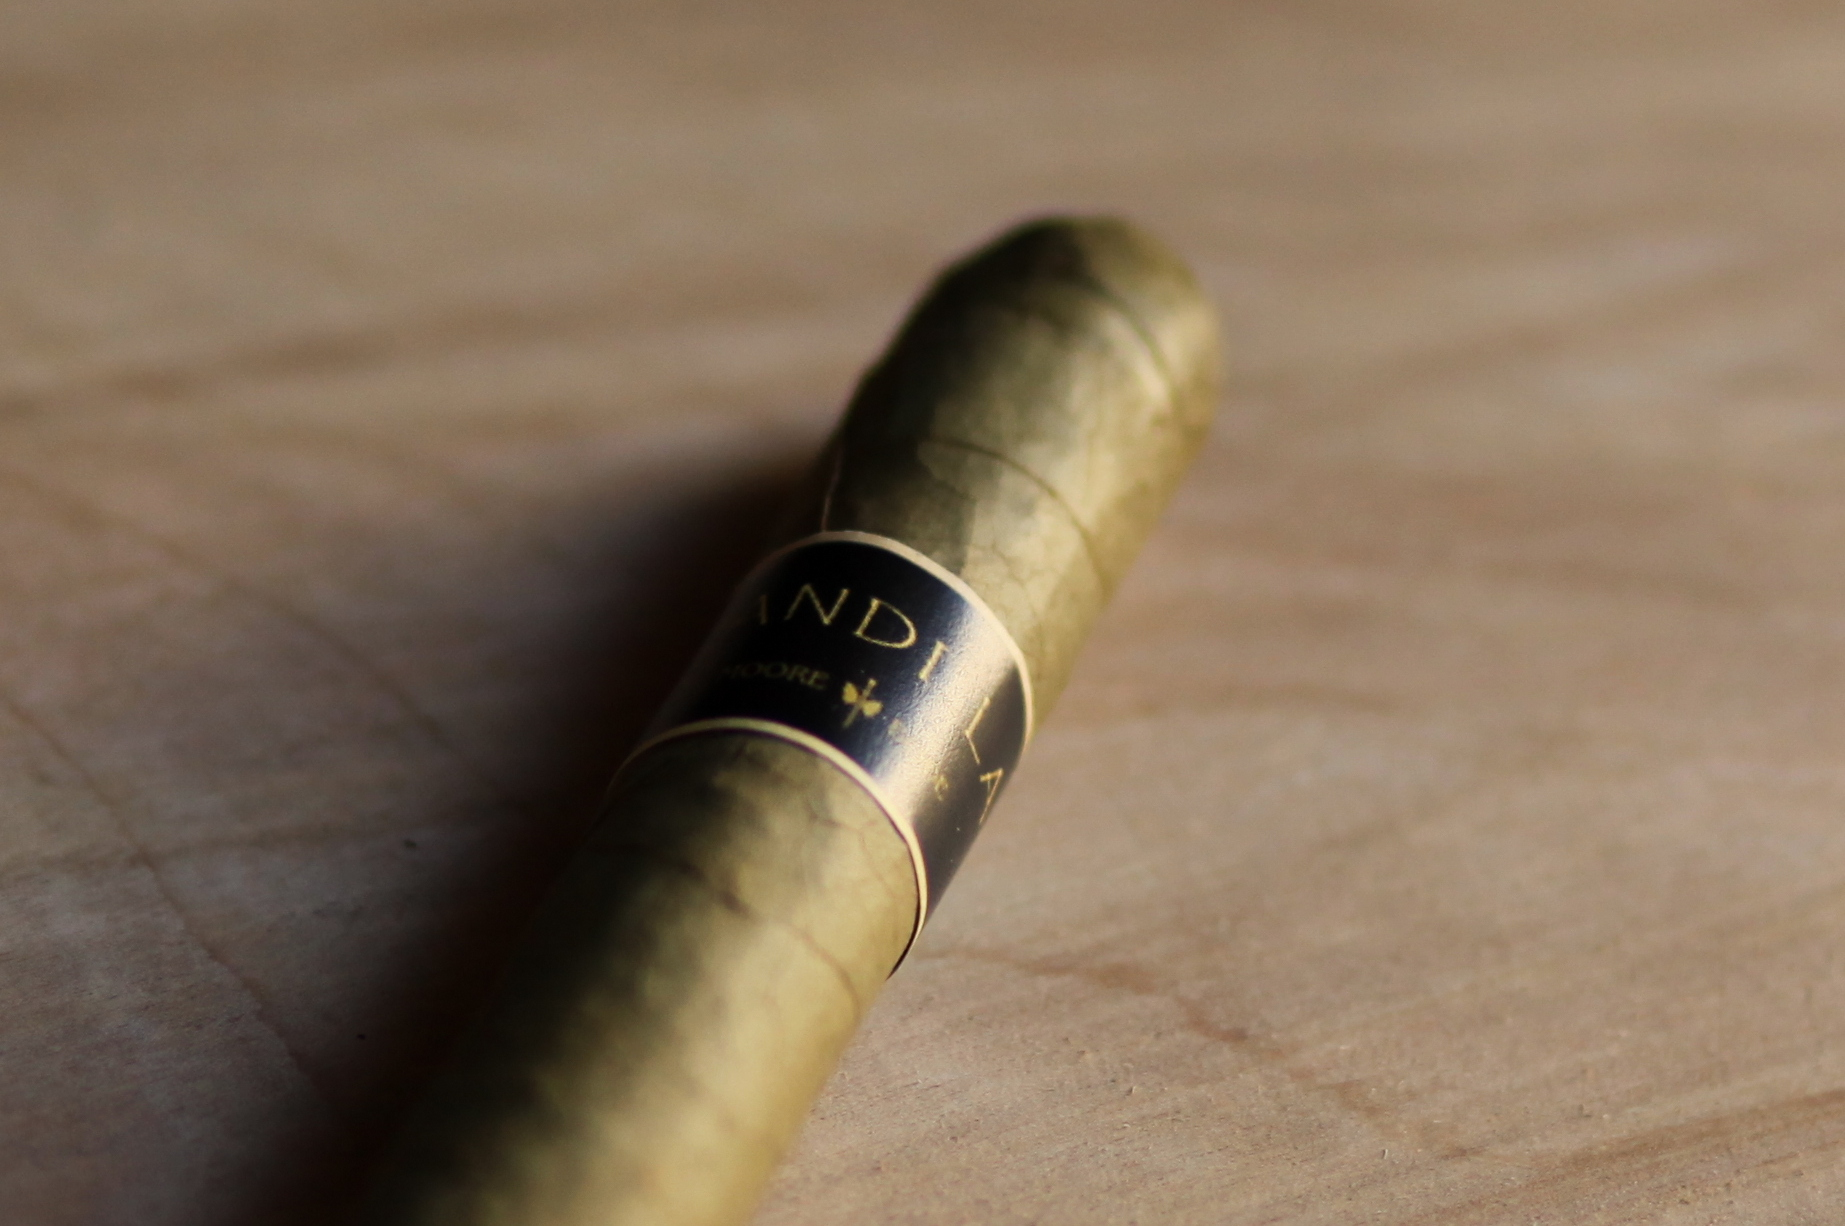 Moore and Bode Candela Cigar Closeup